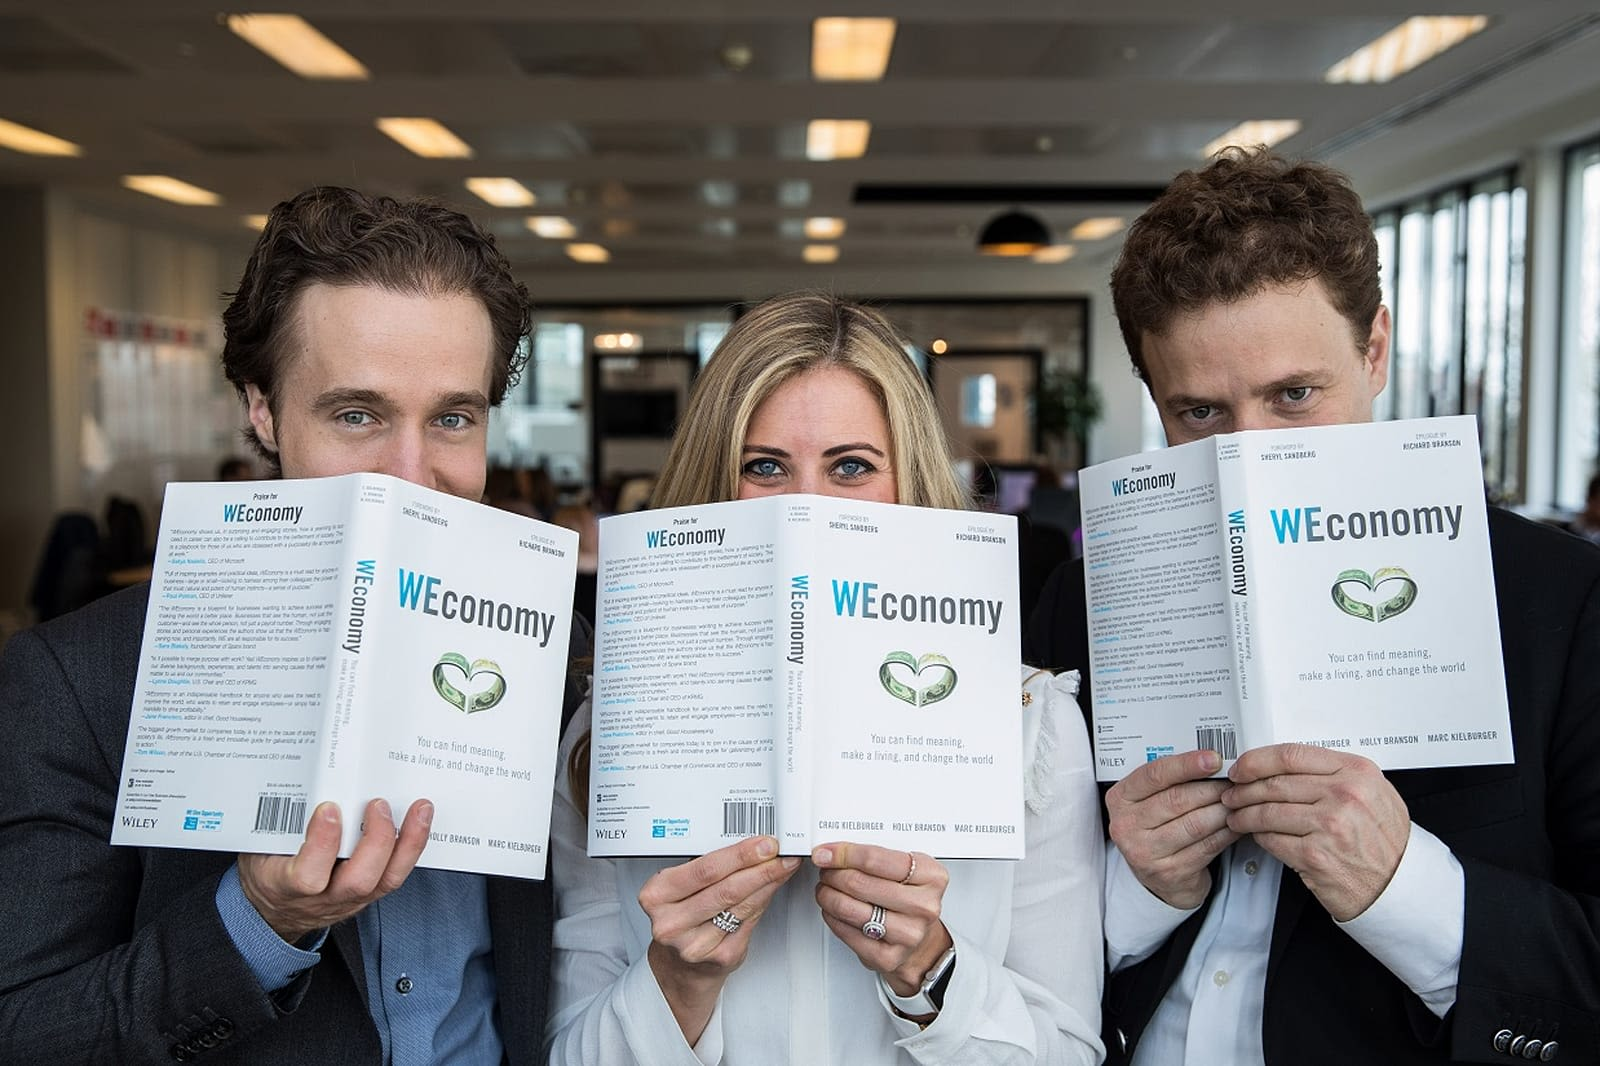 Holly Branson smiles with Marc Kielbrger and Craig Kielberger behind their book copies of Weconomy